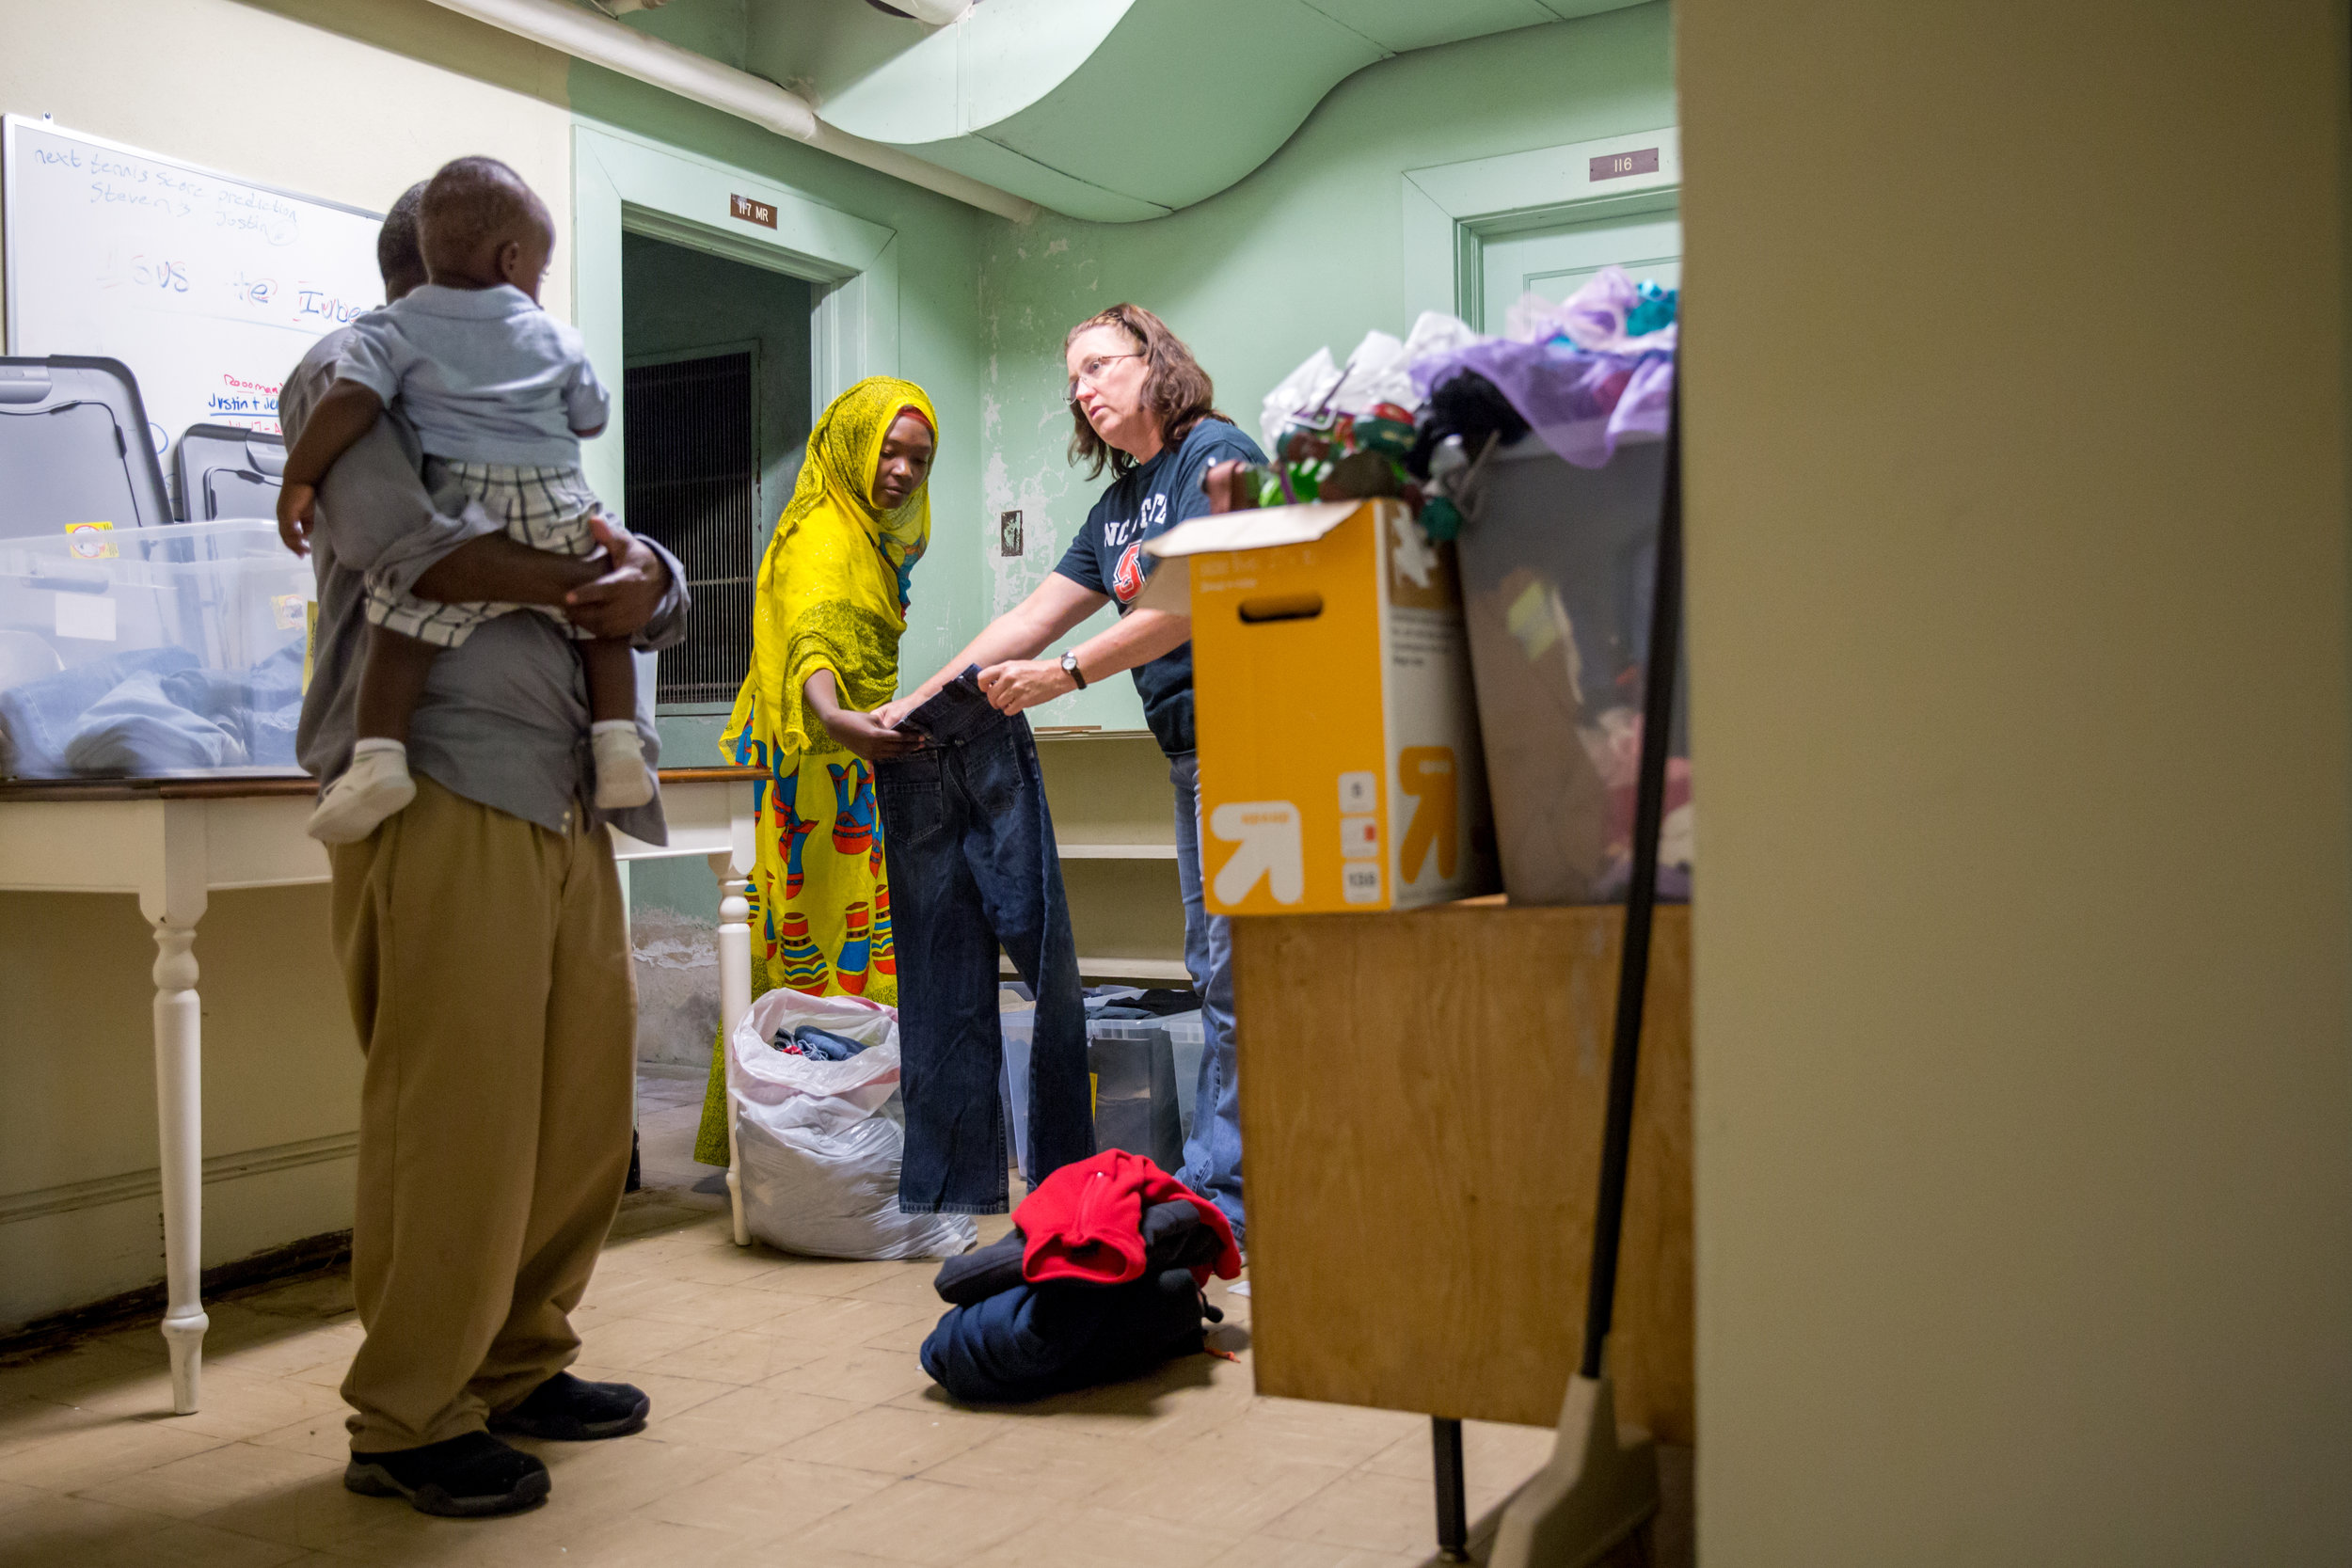 Alice Bolanos and Mnoza pack seven bags full of clothes for the family of eight. The family hasn't experienced a cold winter in over a decade. Finding the clothes to survive through it is crucial.